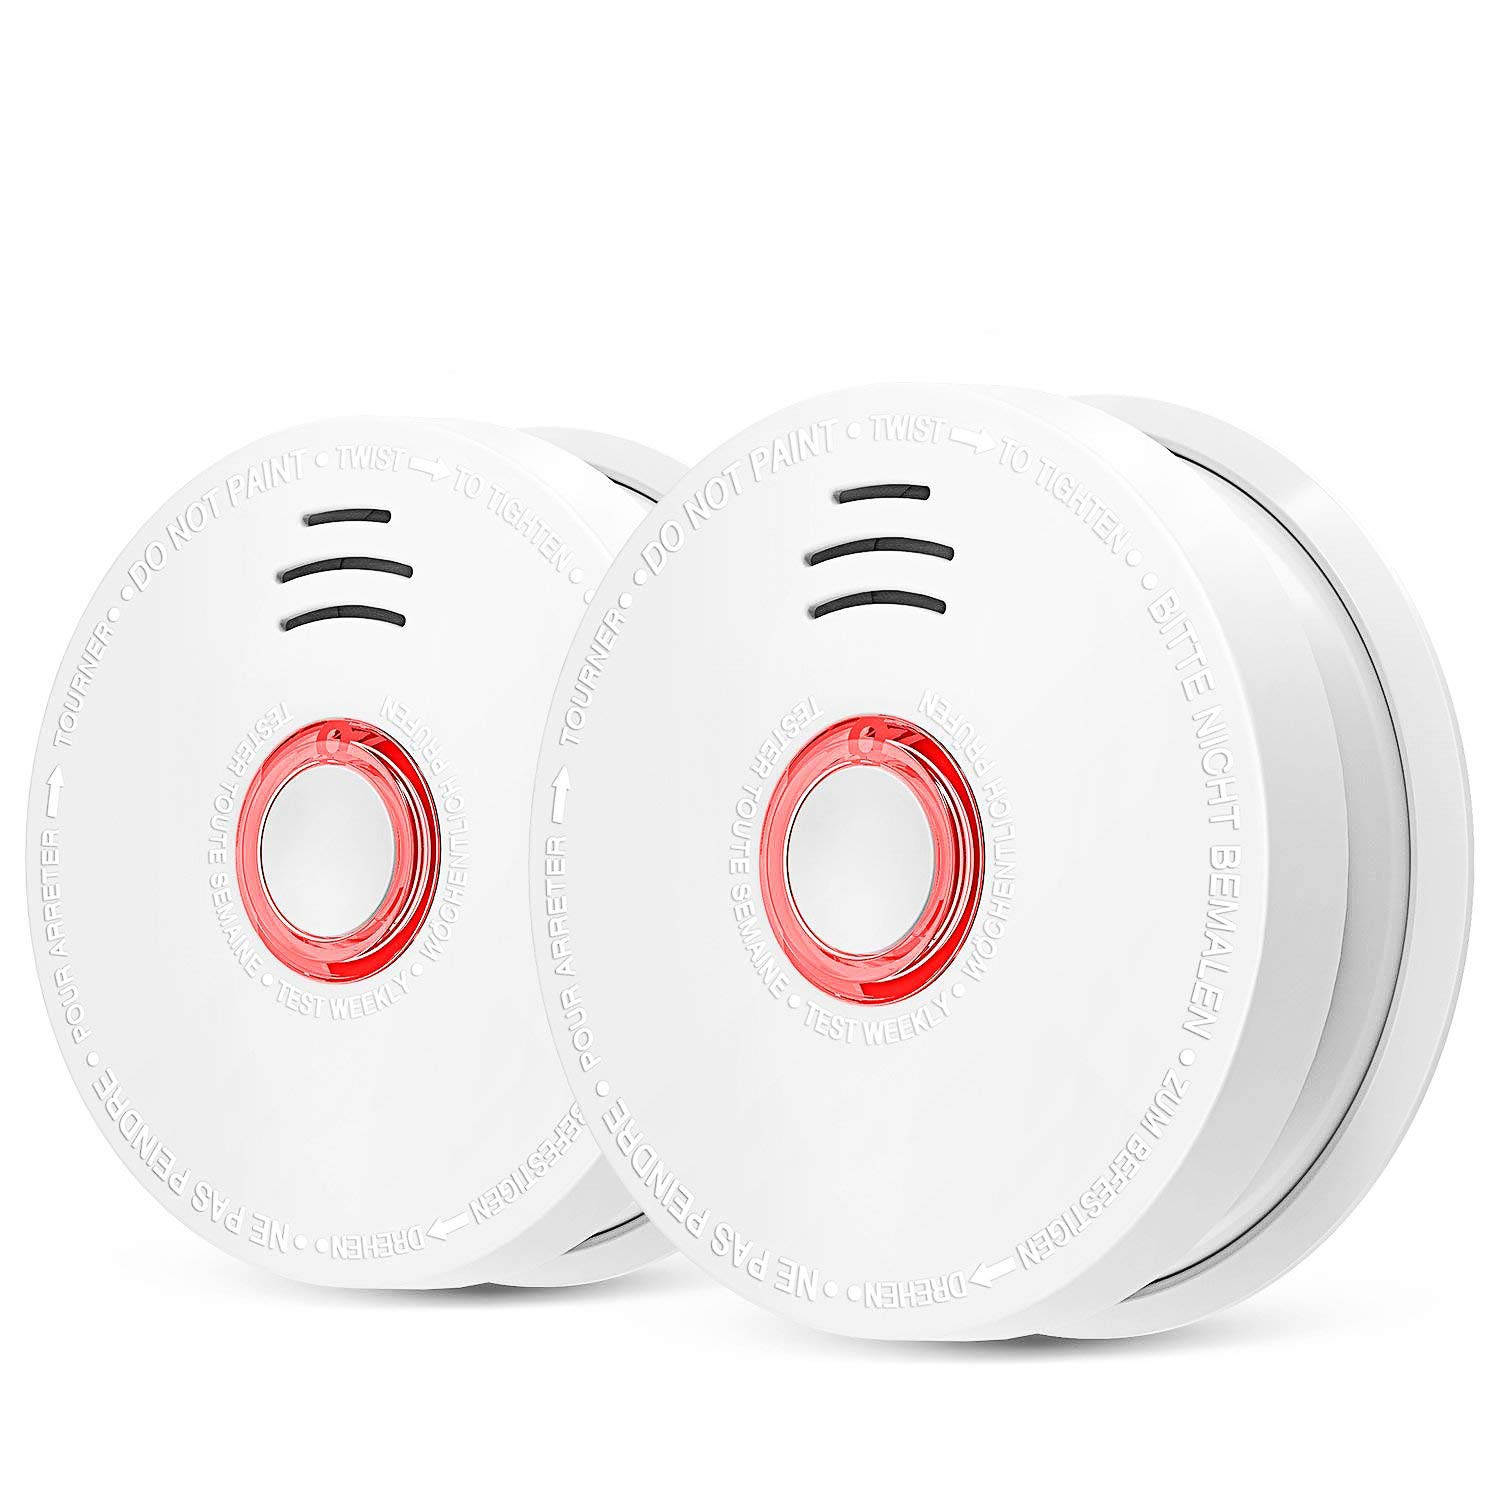 2 Pack Photoelectric Smoke Detector & Alarm, Battery-Operated(Not Hardwired) Smoke and Fire Alarm/Detector with Test Button, Photoelectric Fire Dector/Alarm with UL Listed(9V Battery Included)